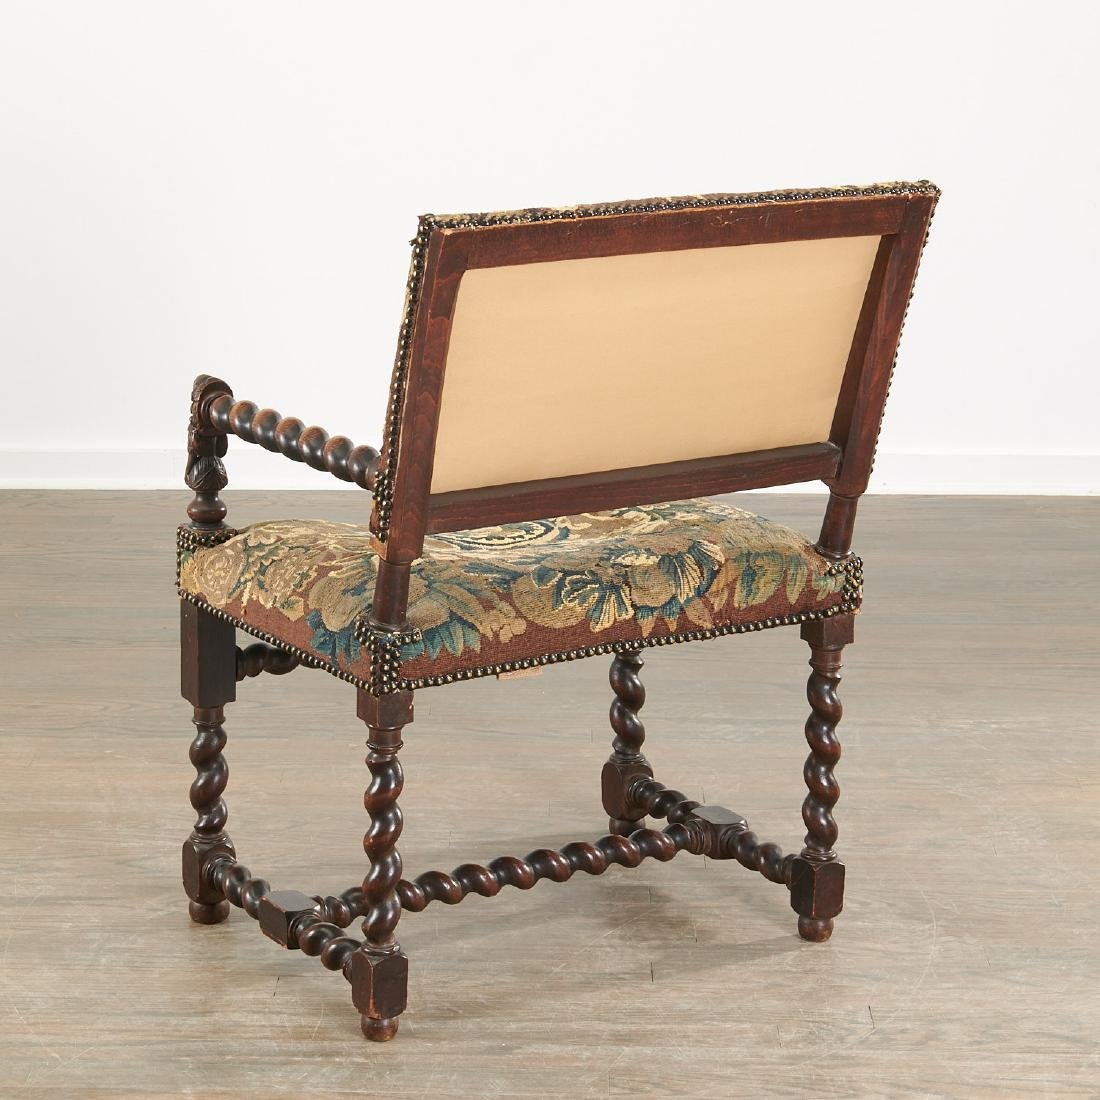 Franco-Flemish Baroque style armchair - 6